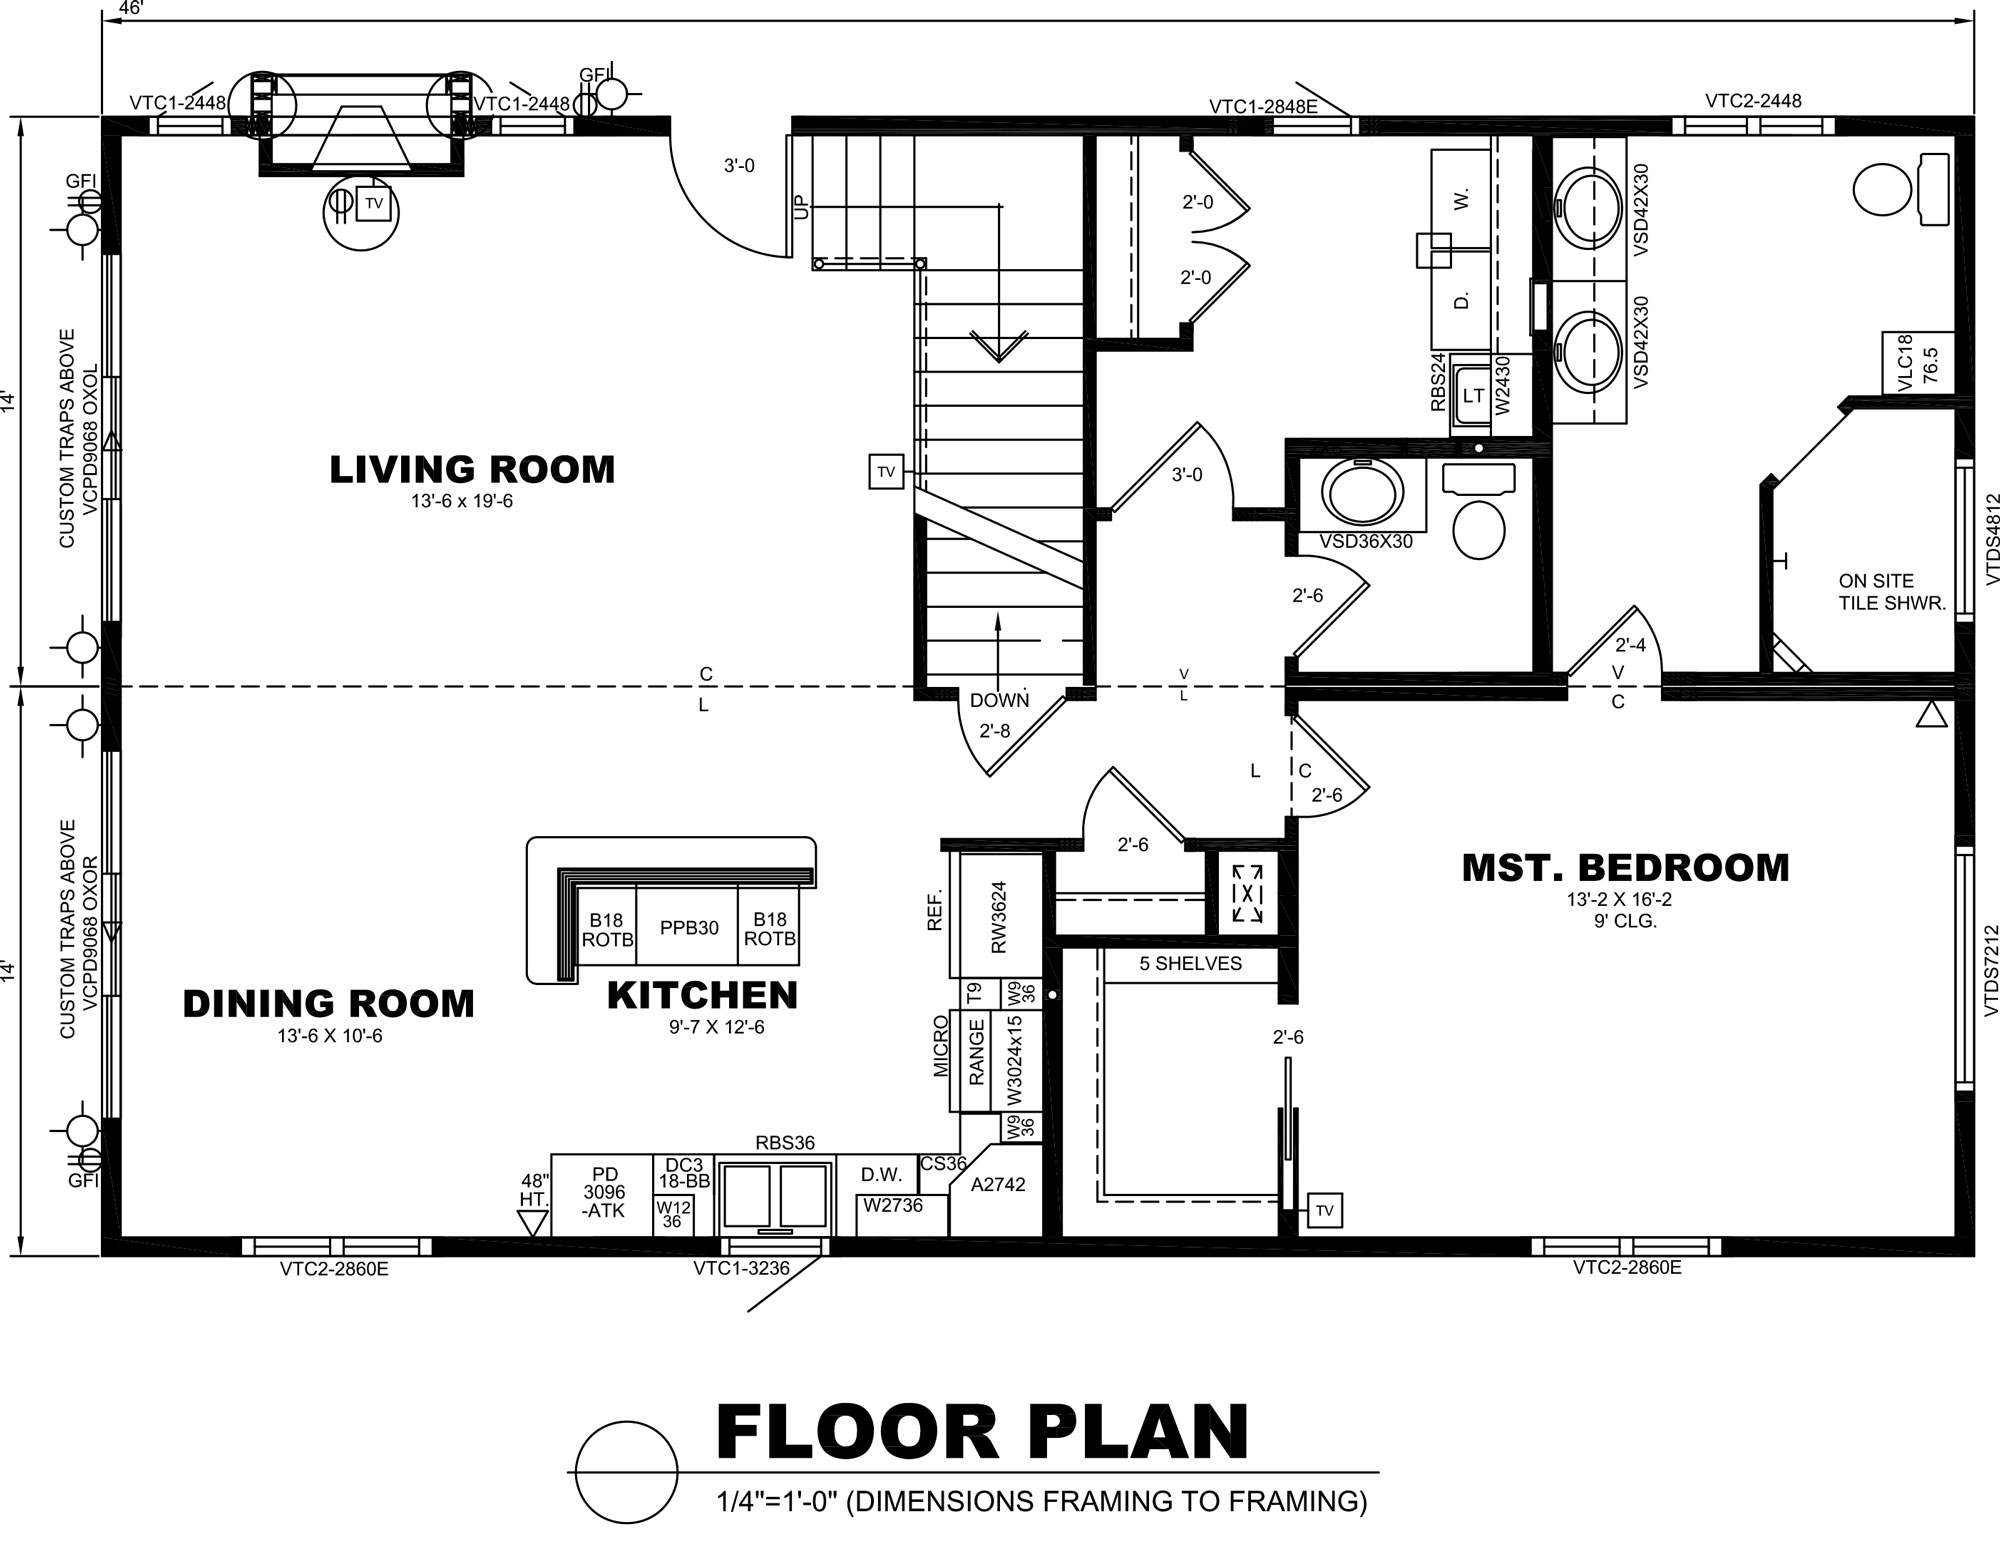 floor plan scale calculator 28 images math floor plans